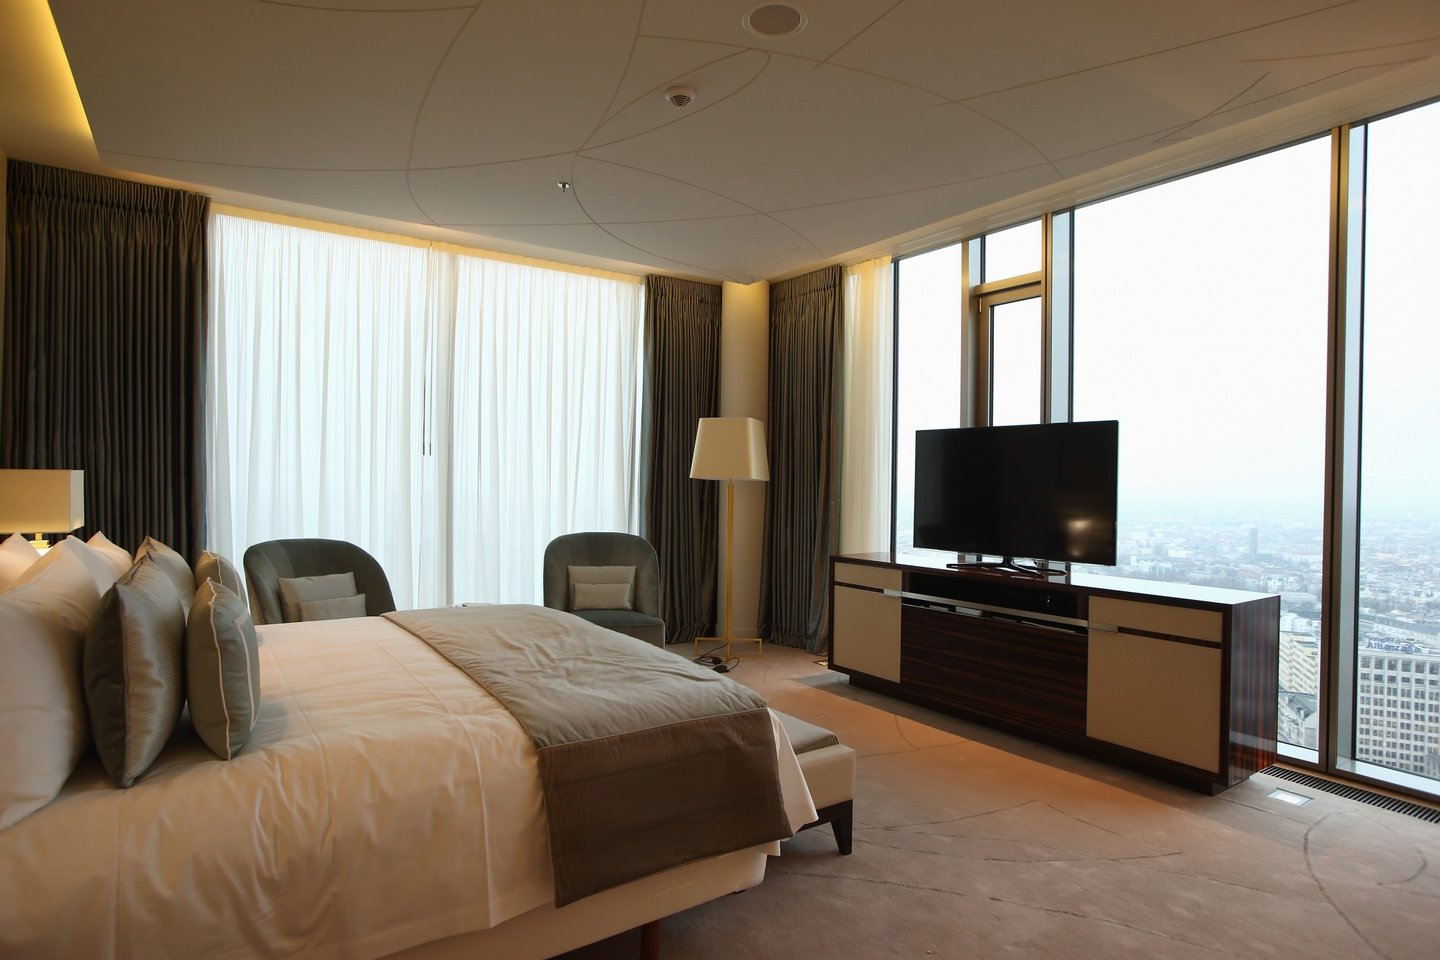 BERLIN, GERMANY - JANUARY 03: The bedroom of the Presidential suite is pictured during the opening of Germany's first Waldorf Astoria hotel on January 3, 2013 in Berlin, Germany. The luxury Waldorf Astoria Berlin with its 232 luxury guest rooms and suites on 32 storeys is located near the Kaiser Wilhelm Memorial Church (Kaiser-Wilhelm-Gedächtniskirche). (Photo by Andreas Rentz/Getty Images)